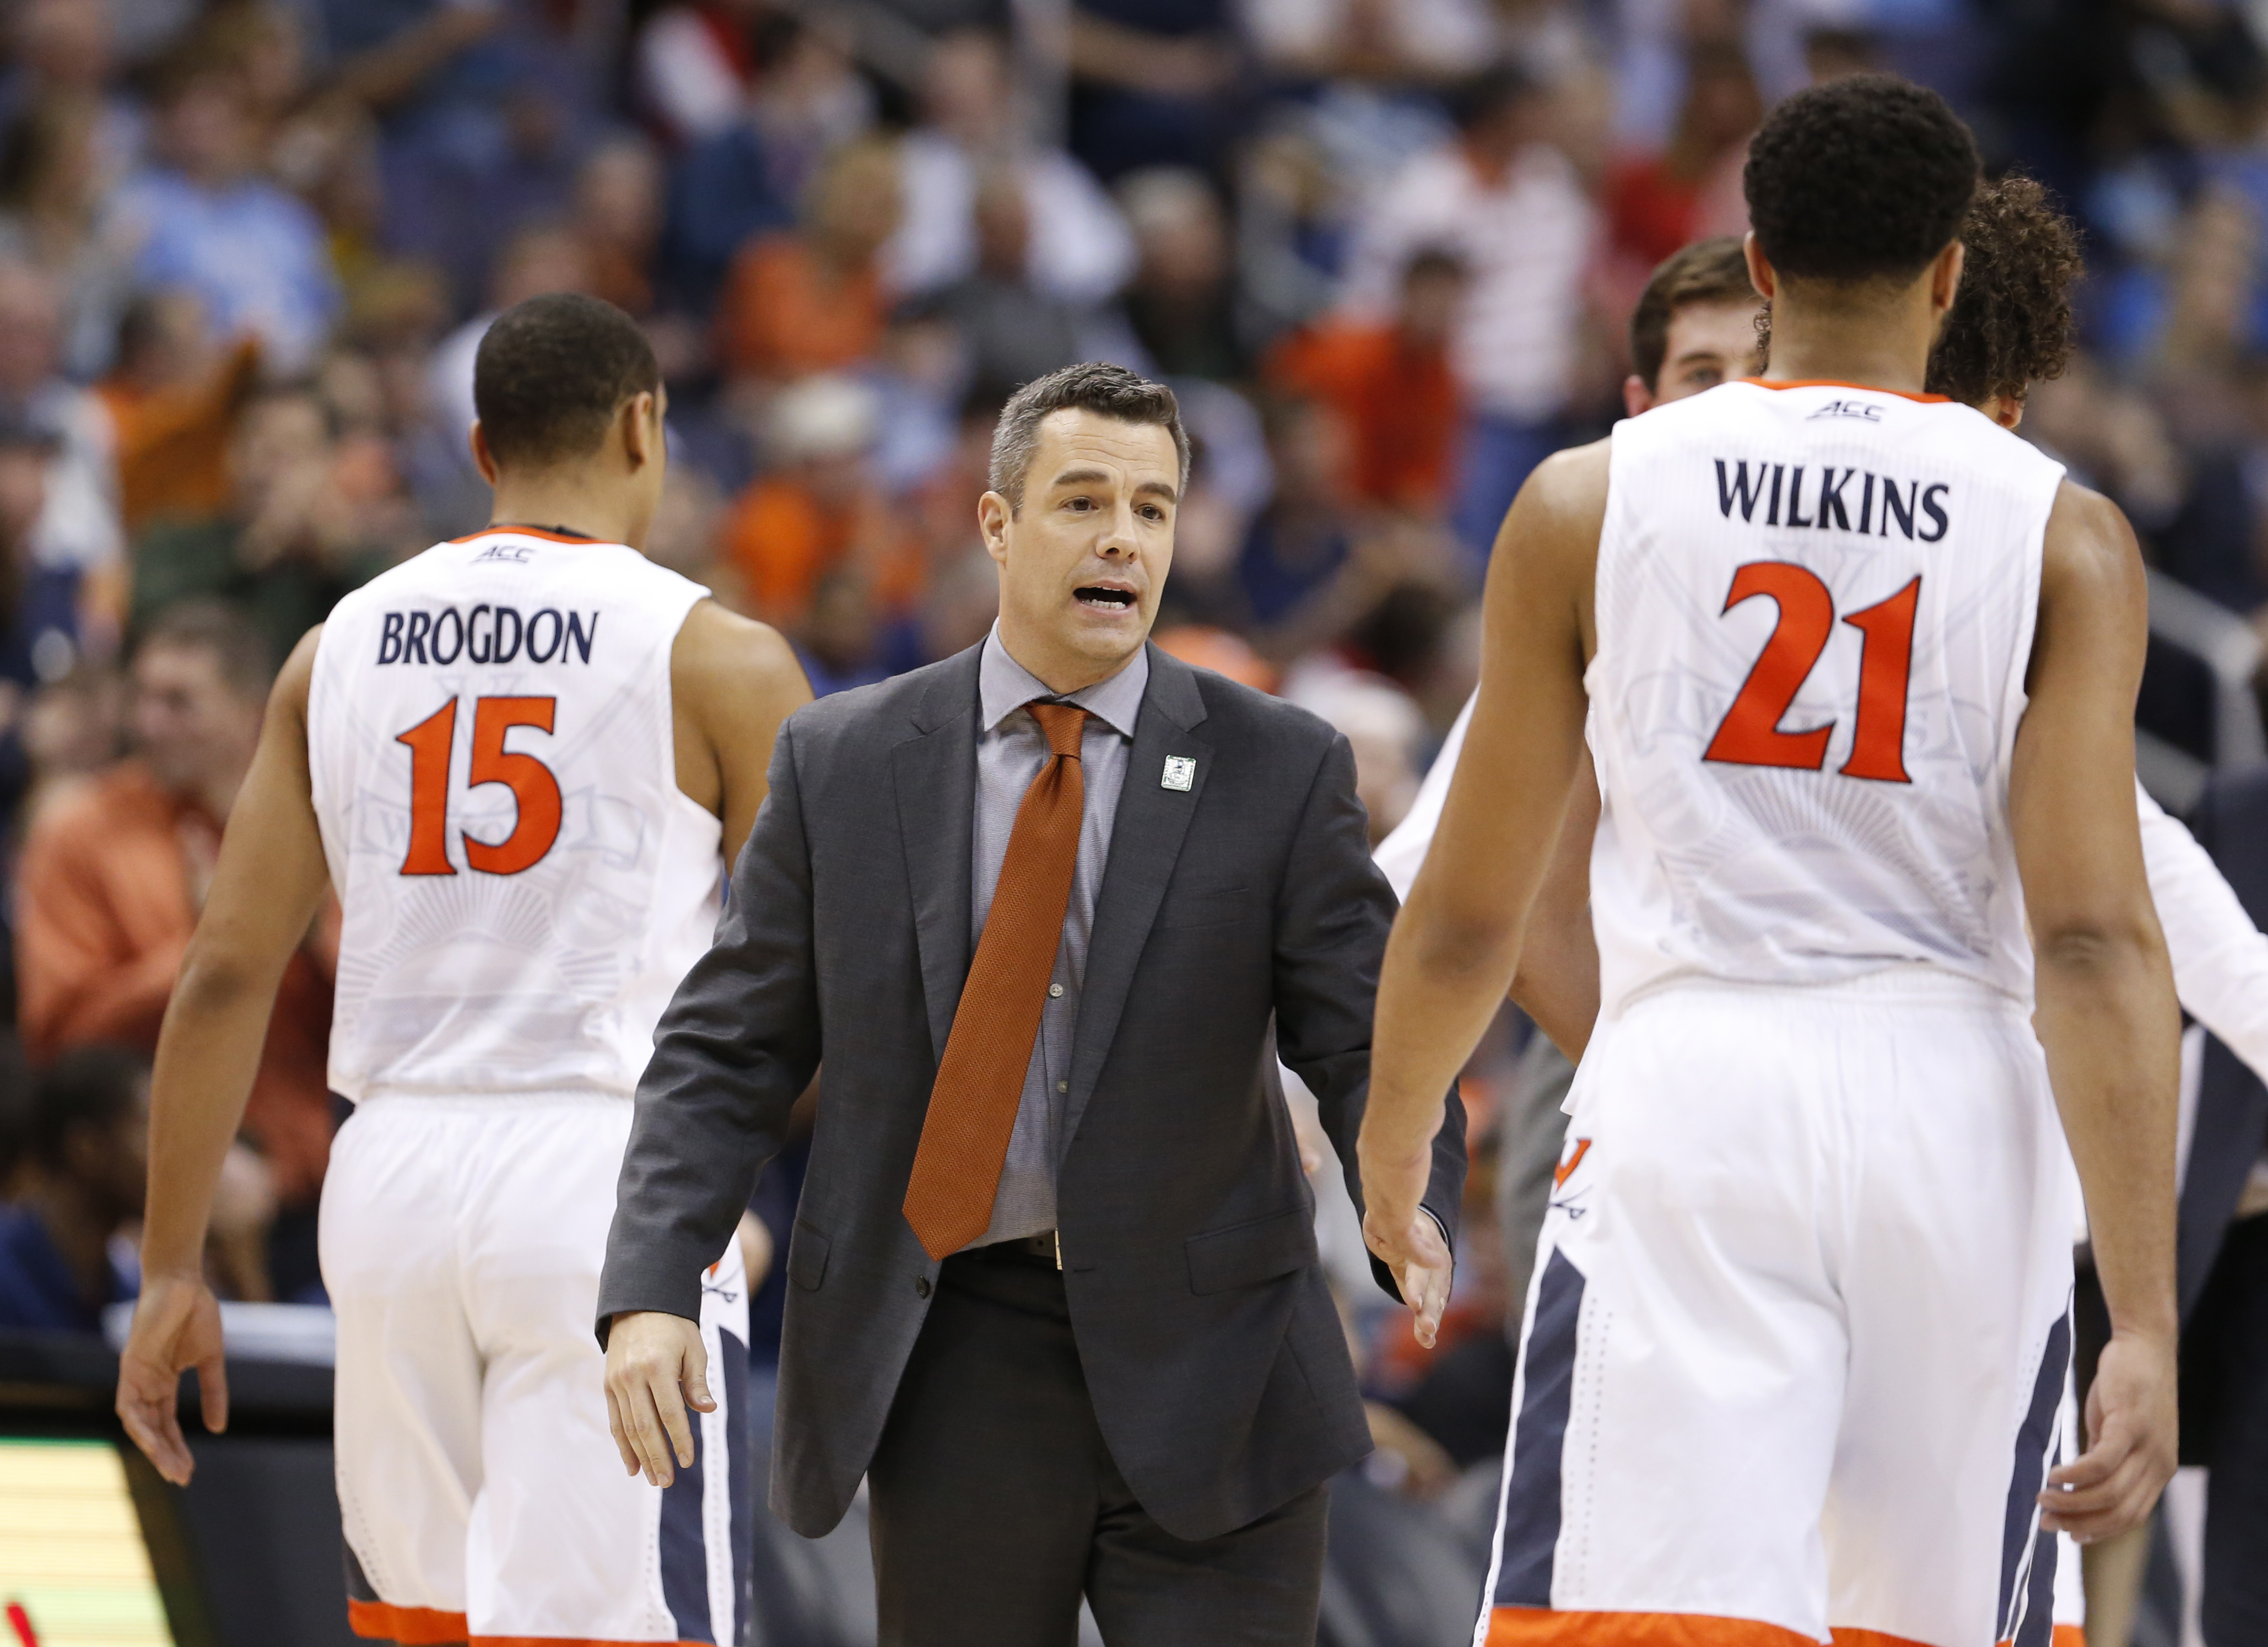 Virginia coach Tony Bennett welcomes guard Malcolm Brogdon (15) and forward Isaiah Wilkins (21) back to the bench during the second half of an NCAA college basketball game against Georgia Tech in the Atlantic Coast Conference men's tournament in Washingto